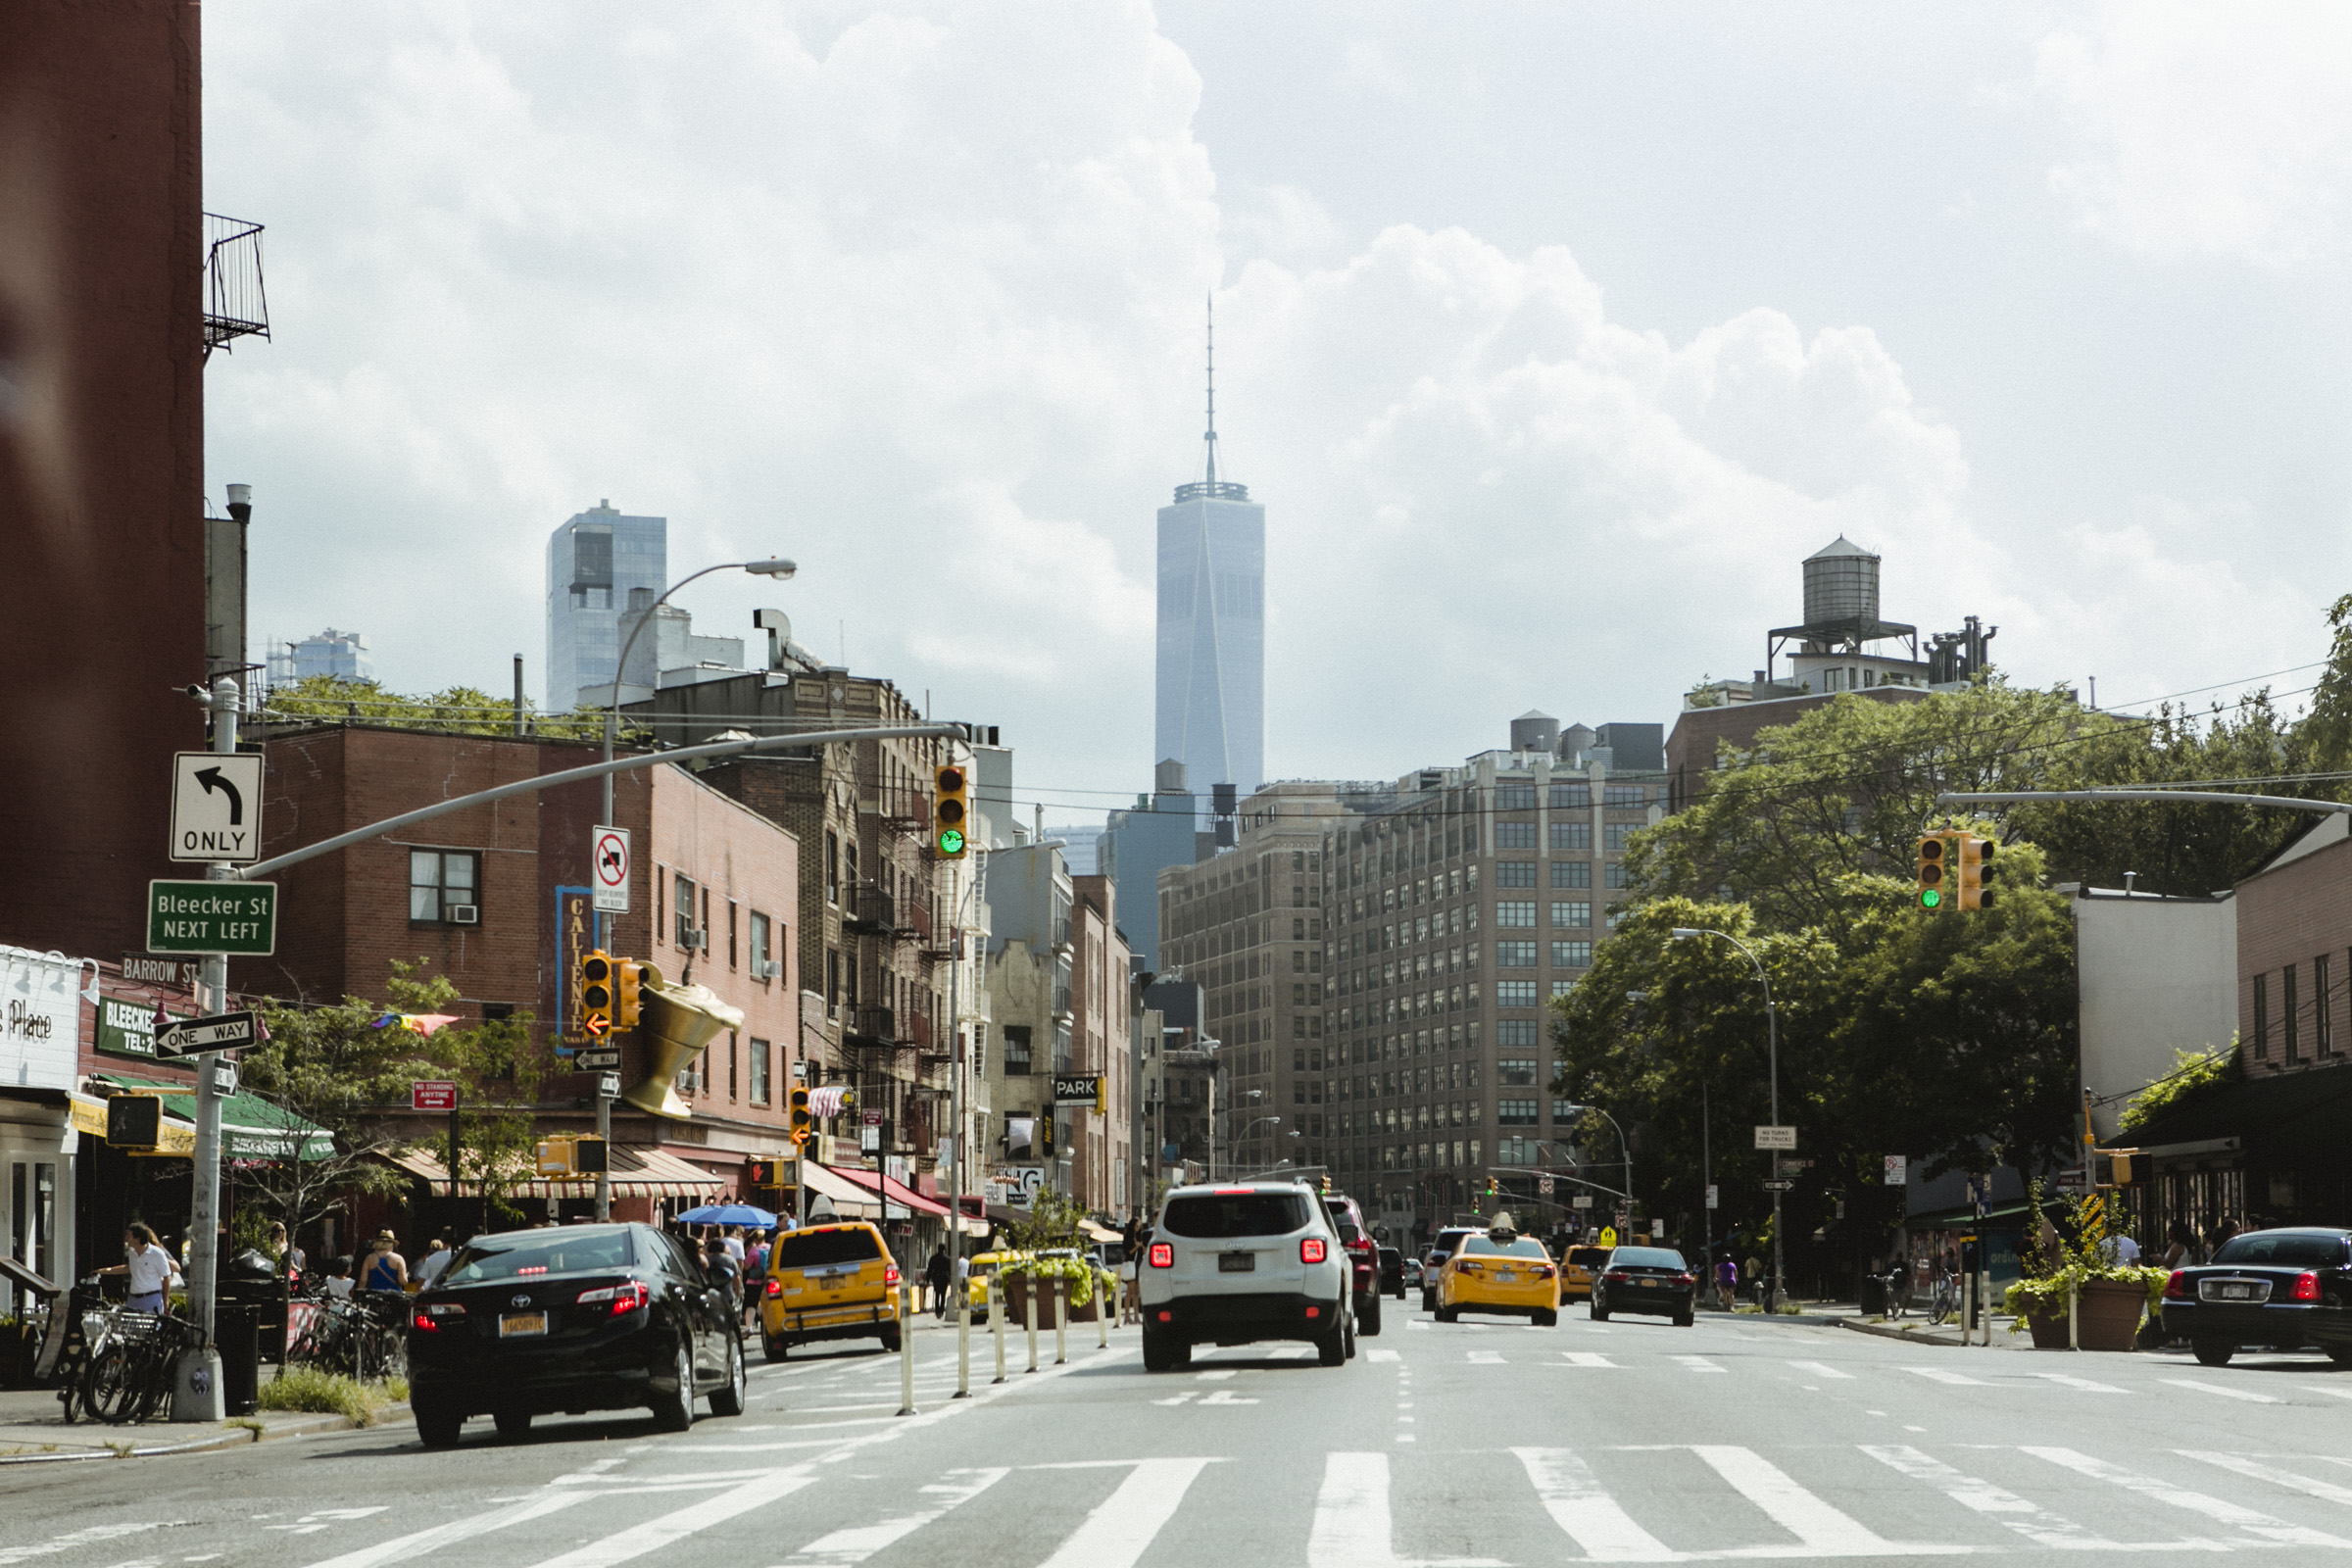 New York City street with view of Freedom Tower | Manhattan wedding | Bronx Wedding | Cathy & Antonello's wedding | Amy Sims Photography